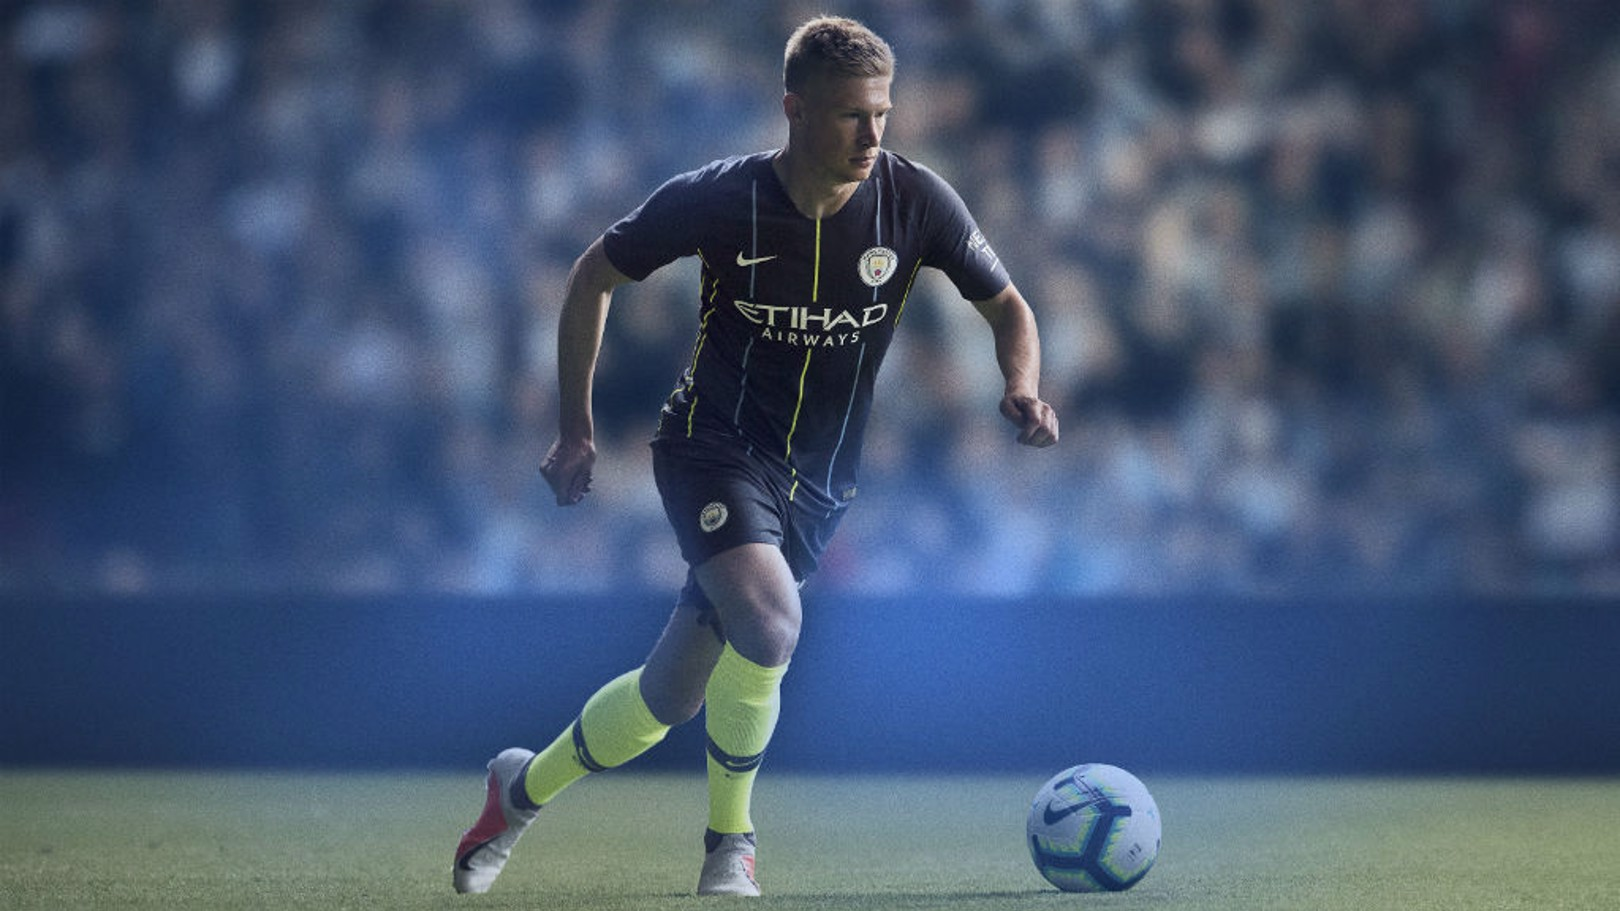 LOOKING SHARP: Kevin De Bruyne models City's new 2018/19 away kit